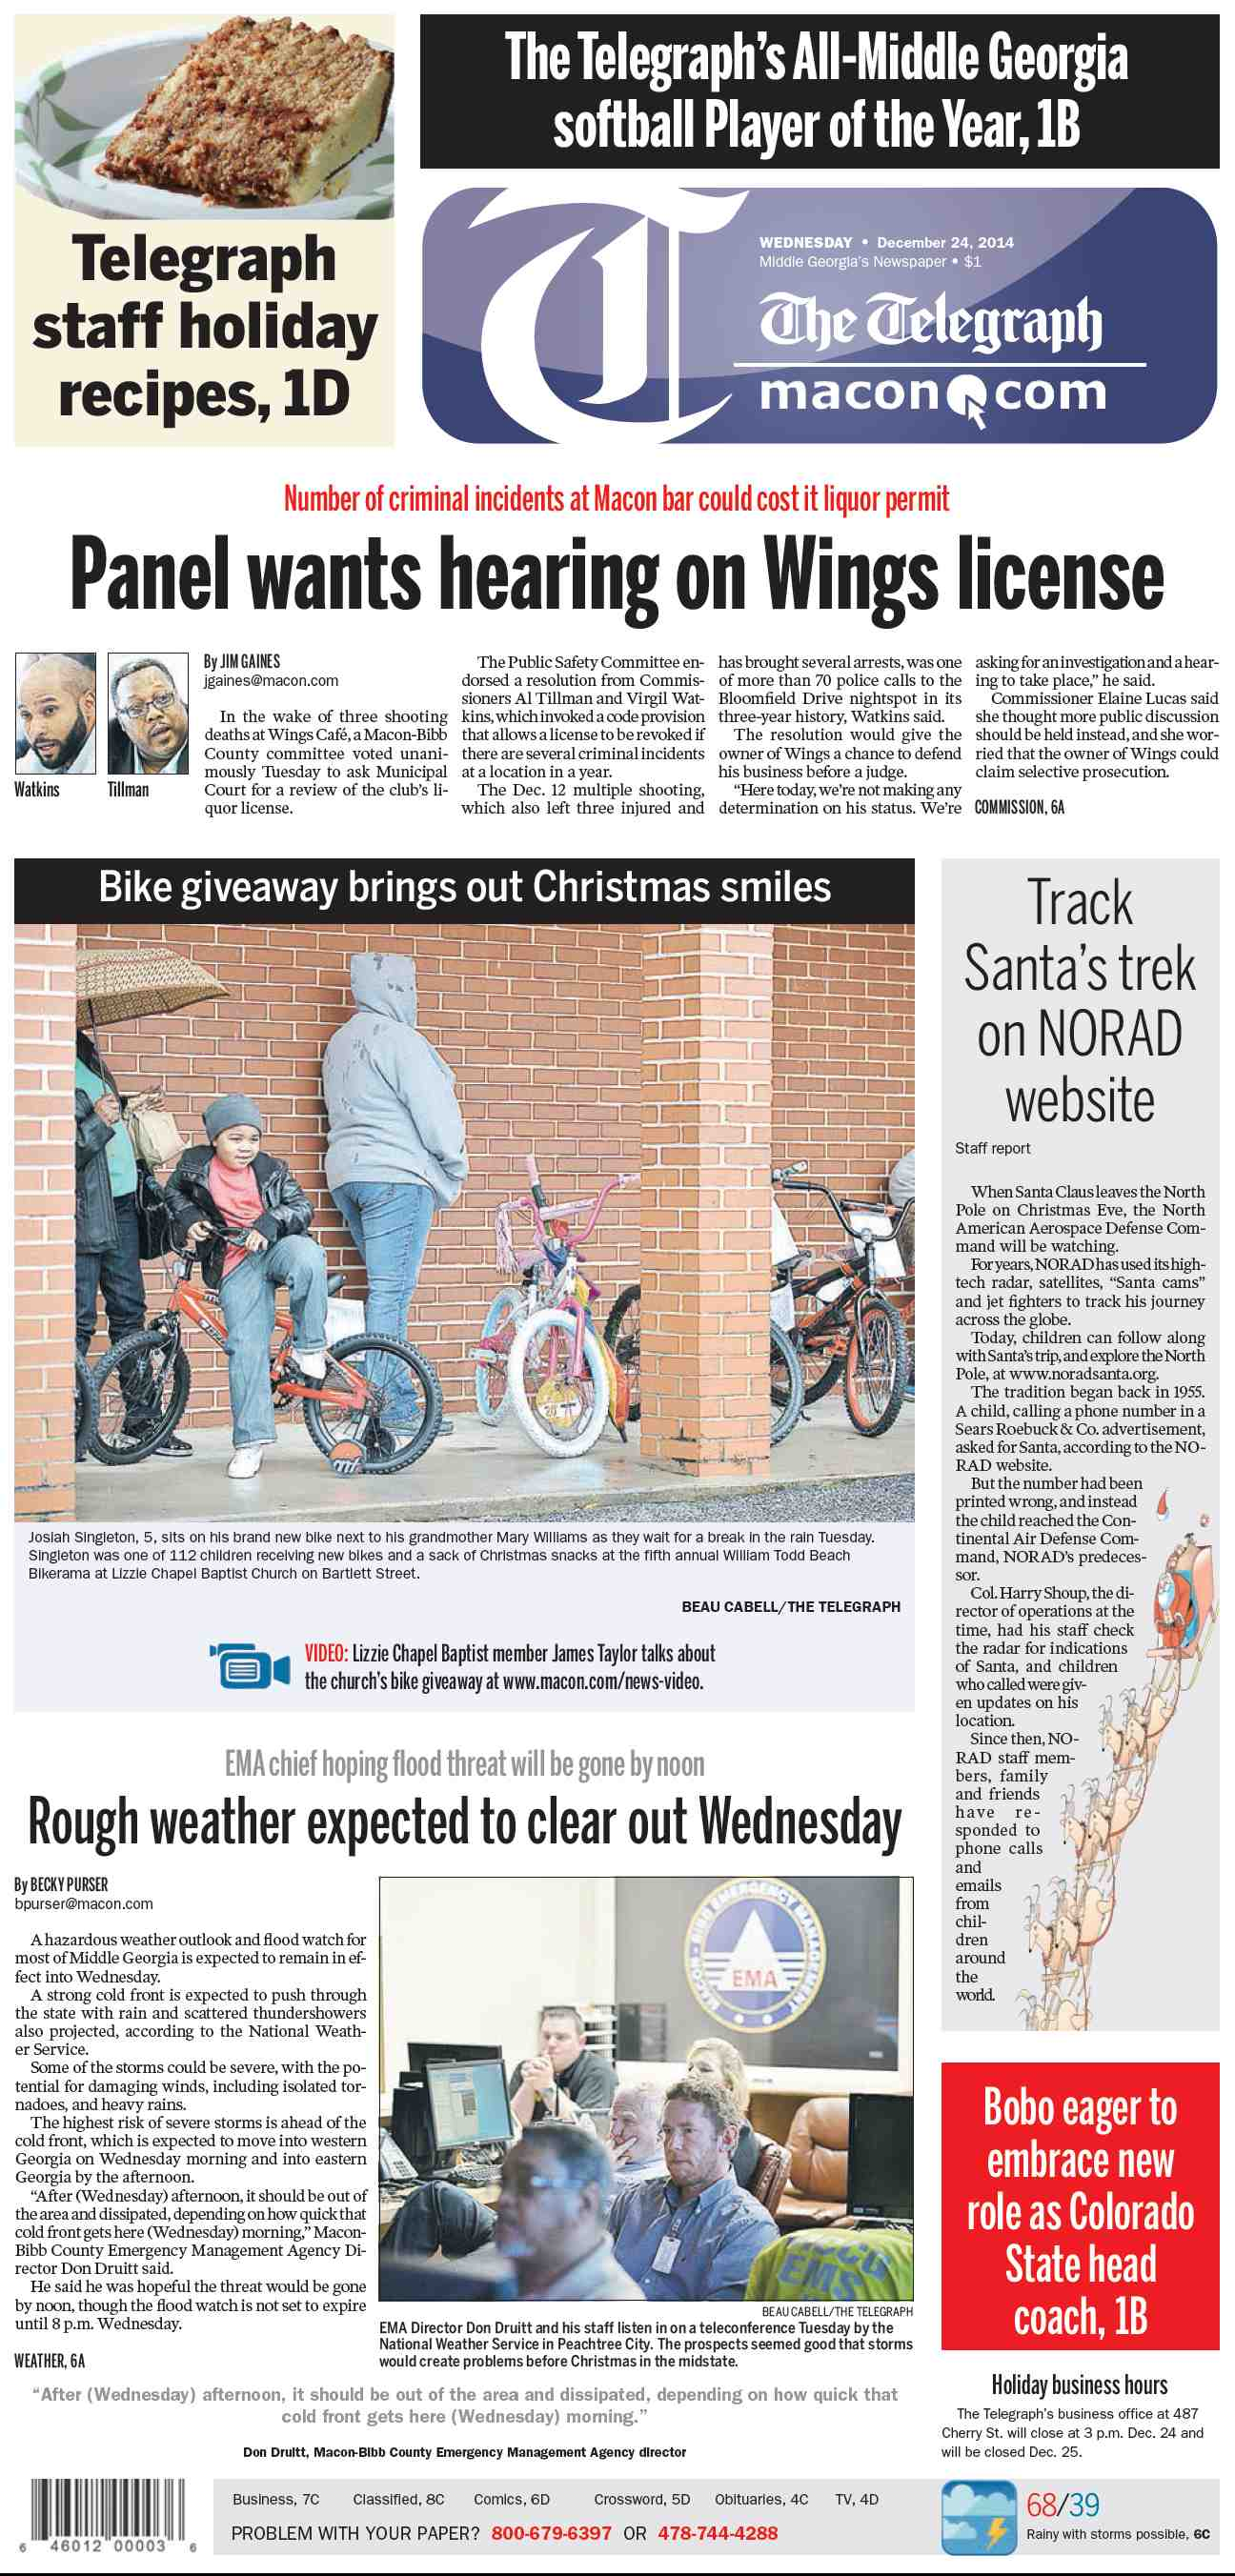 The Telegraph Macon  December 24, 2014 free download